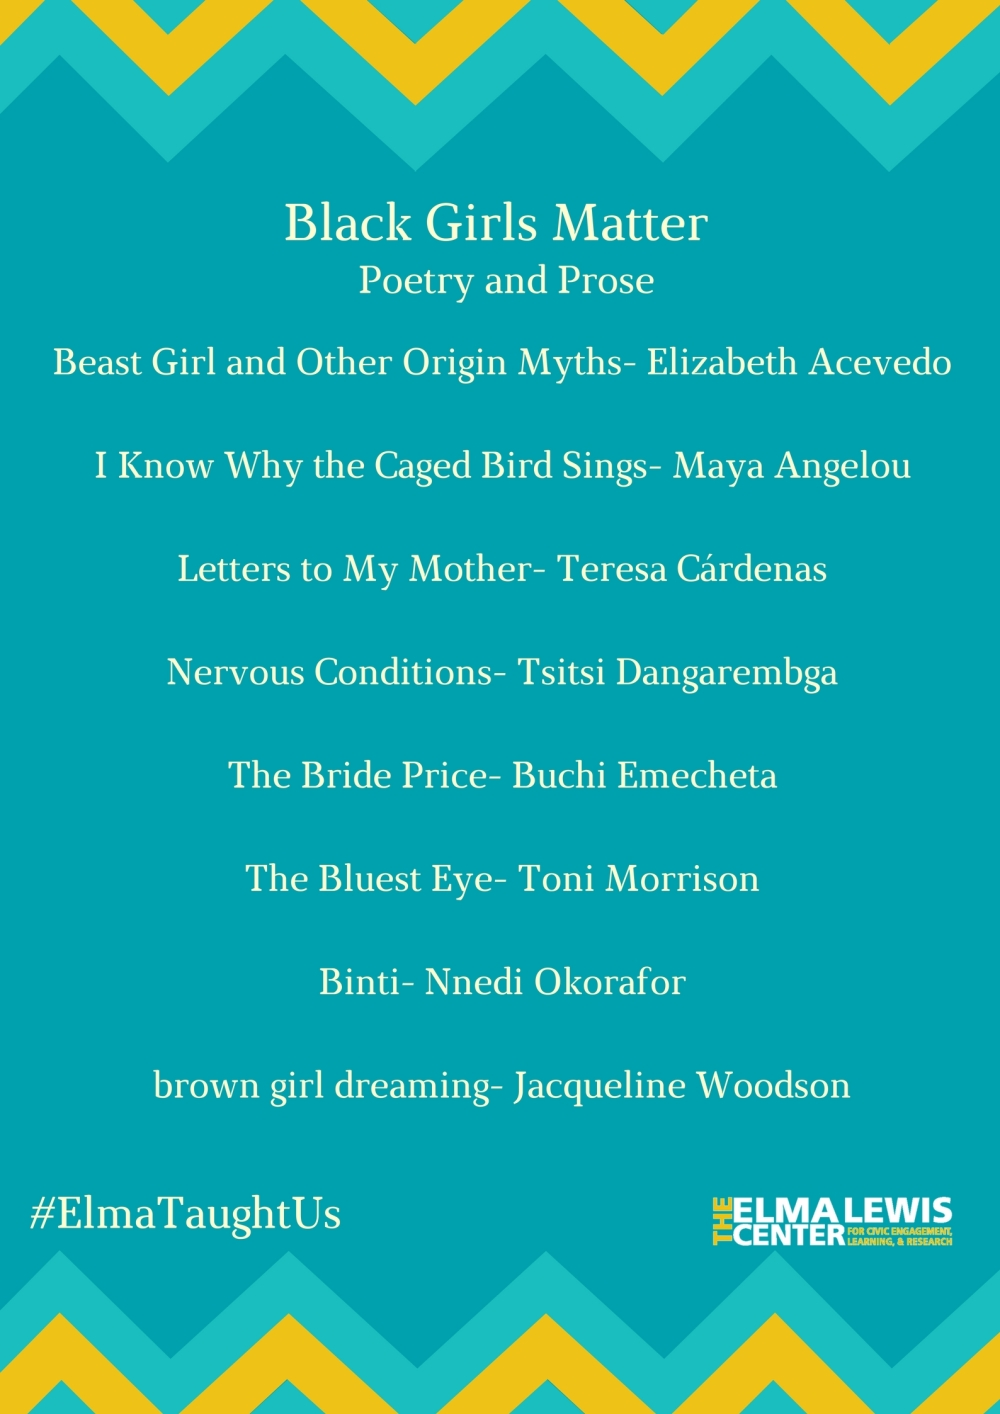 BlackFem101- Reading List (5)